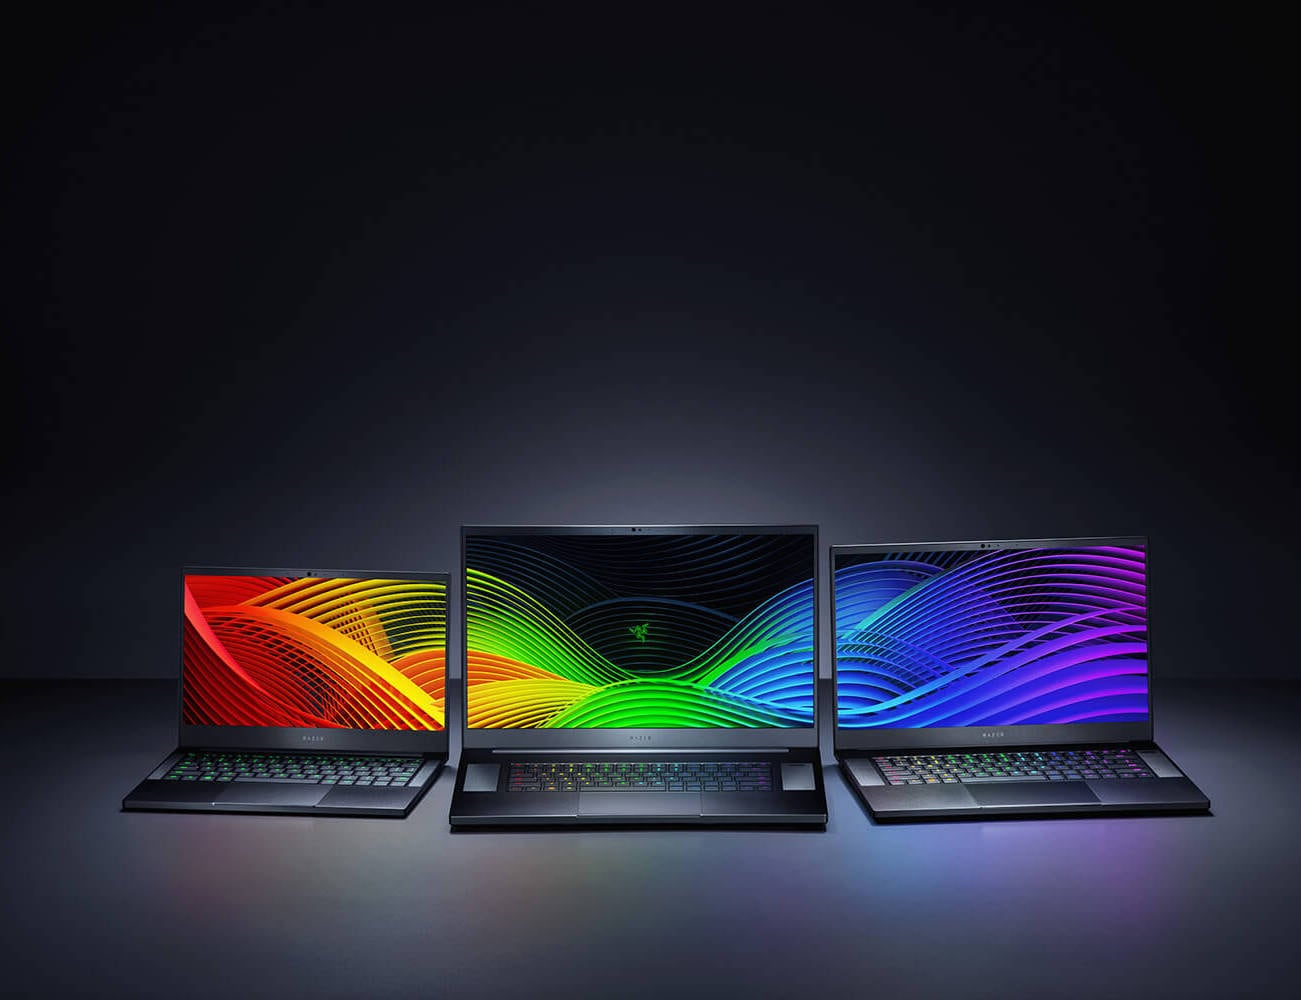 The best new tech revealed at Computex 2019 - Razer Blade Pro 17 3